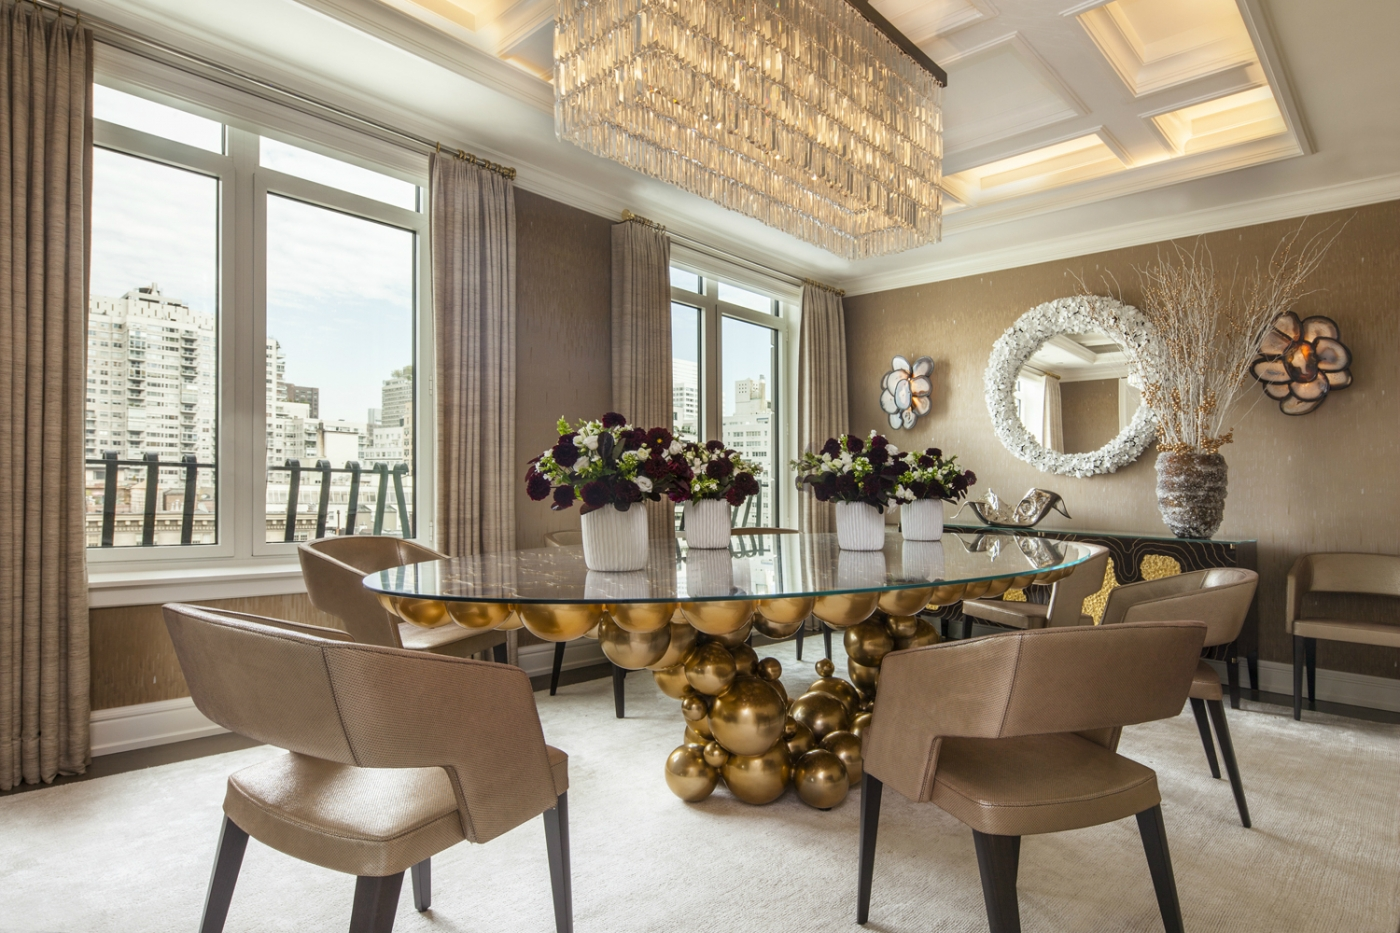 luxury penthouse A Luxury Penthouse Embellished With Love of Jewel-Like Surfaces A Penthouse Embellished With Love of Jewel Like Surfaces feature 1400x933